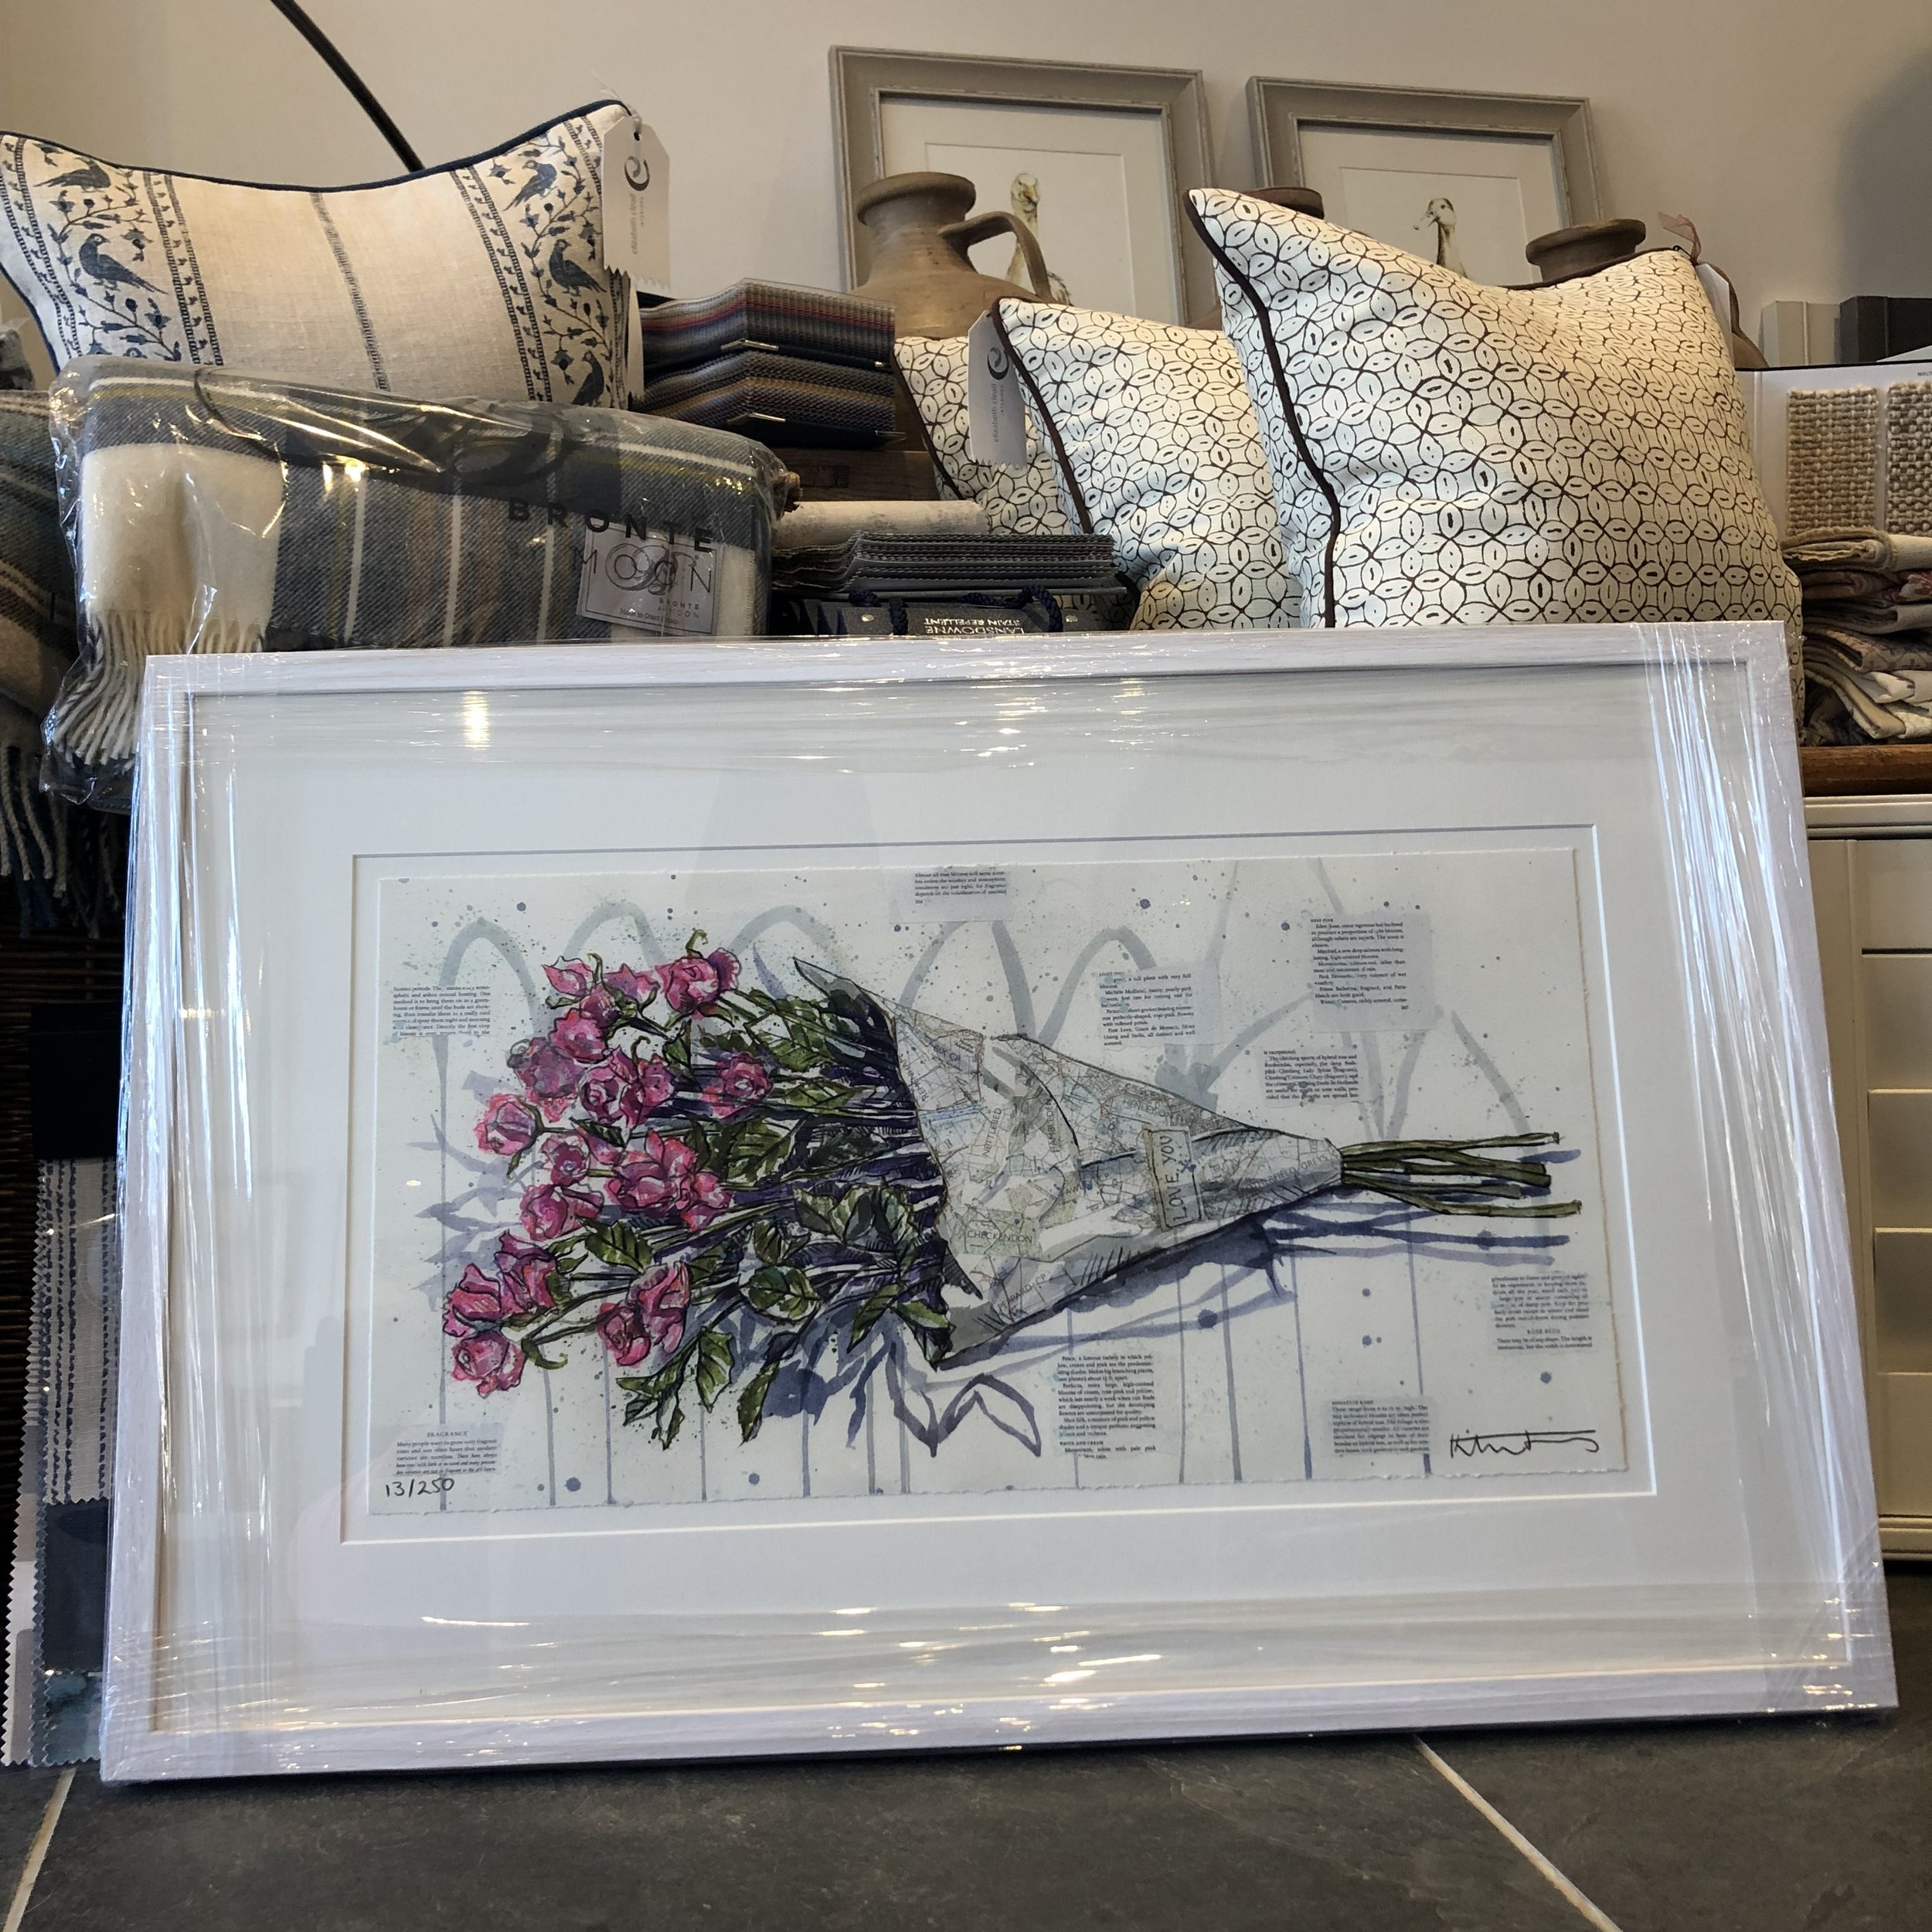 Looking lovely with the beautiful blues and greys in The Studio at Lovegrove's Farm